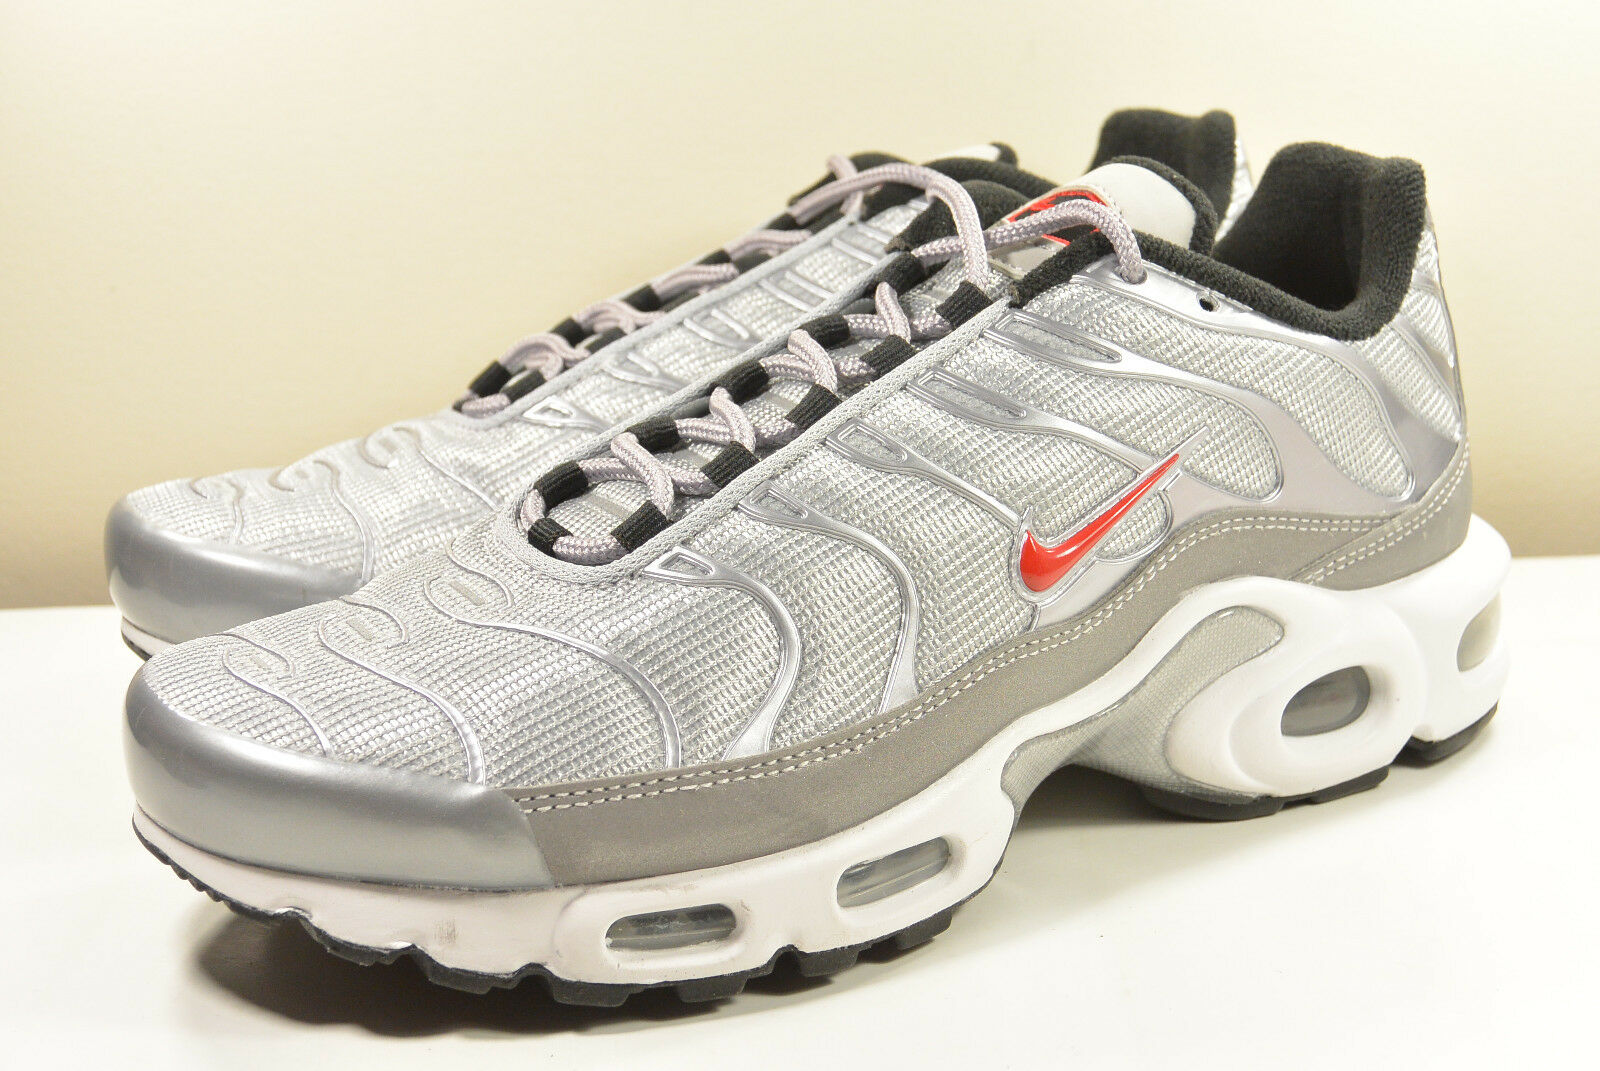 DS NIKE 2018 AIR MAX PLUE SILVER BULLET M 8 / W 9.5 ATMOS PATTA CAMO 97 1 90 The latest discount shoes for men and women